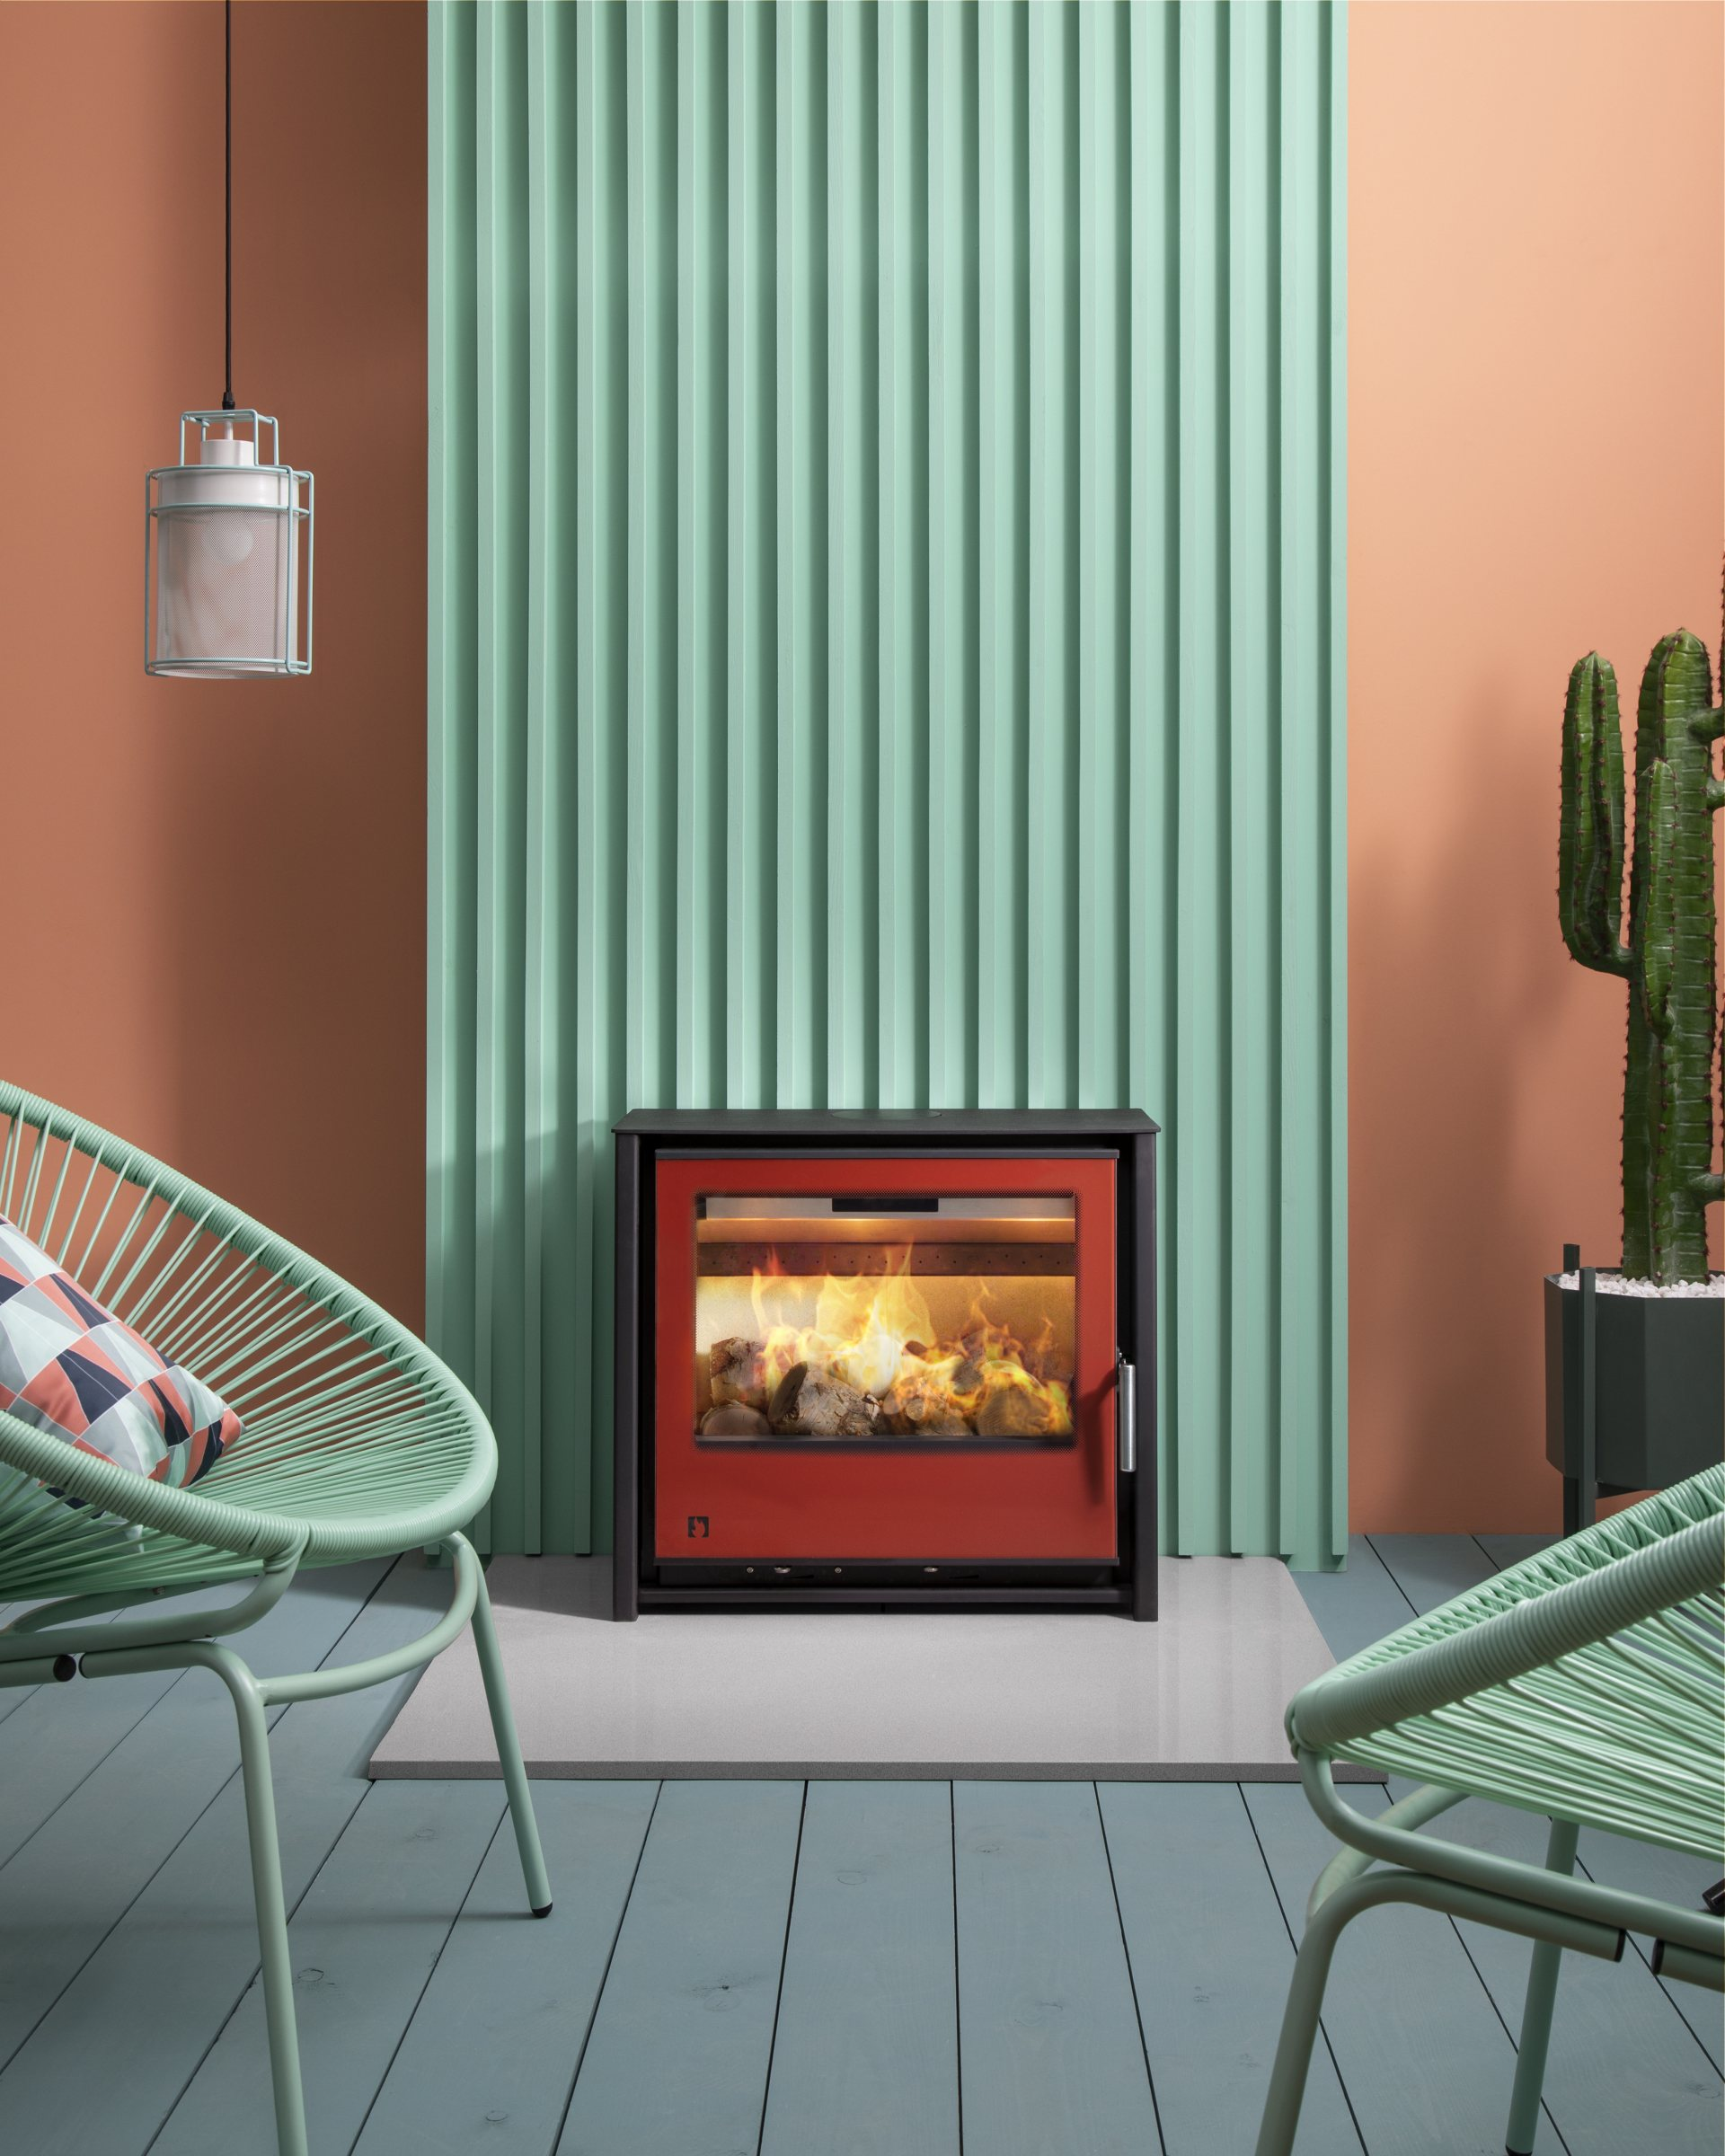 Arada i600 Slimline Freestanding Low stove in Spice red in stylish contemporary pastel-coloured room